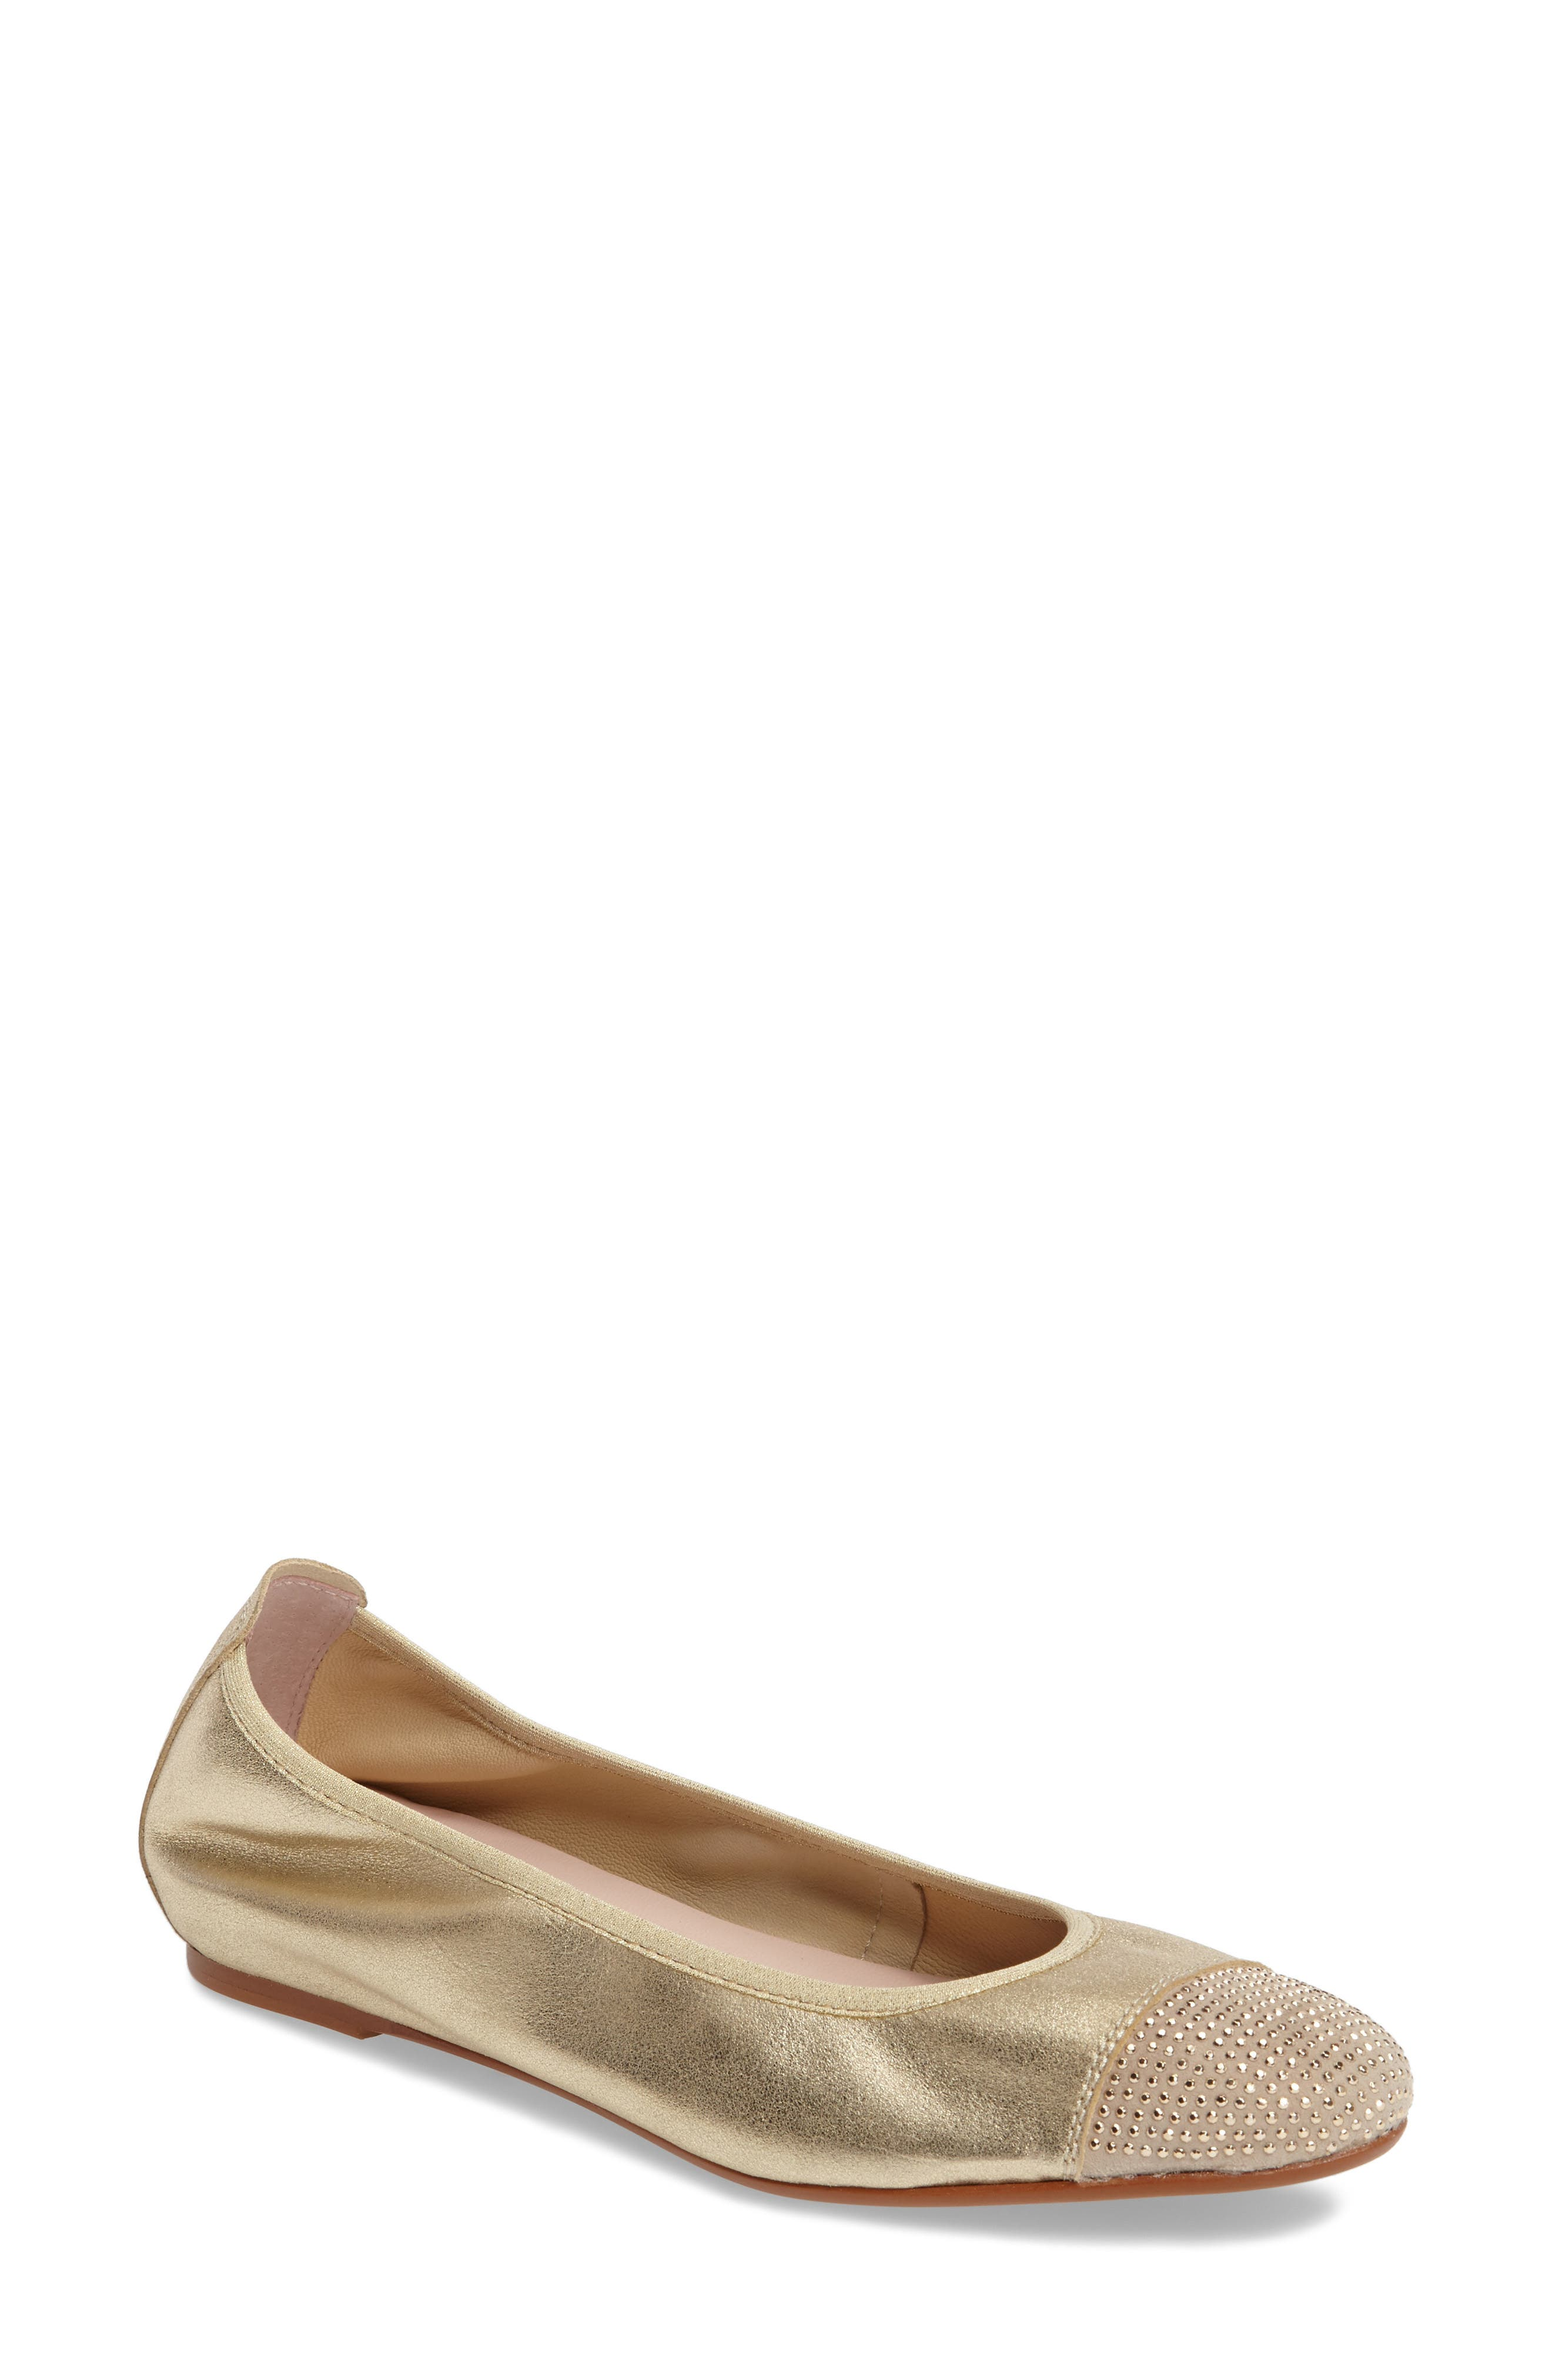 Alternate Image 1 Selected - Patricia Green 'Starr' Studded Ballet Flat (Women)